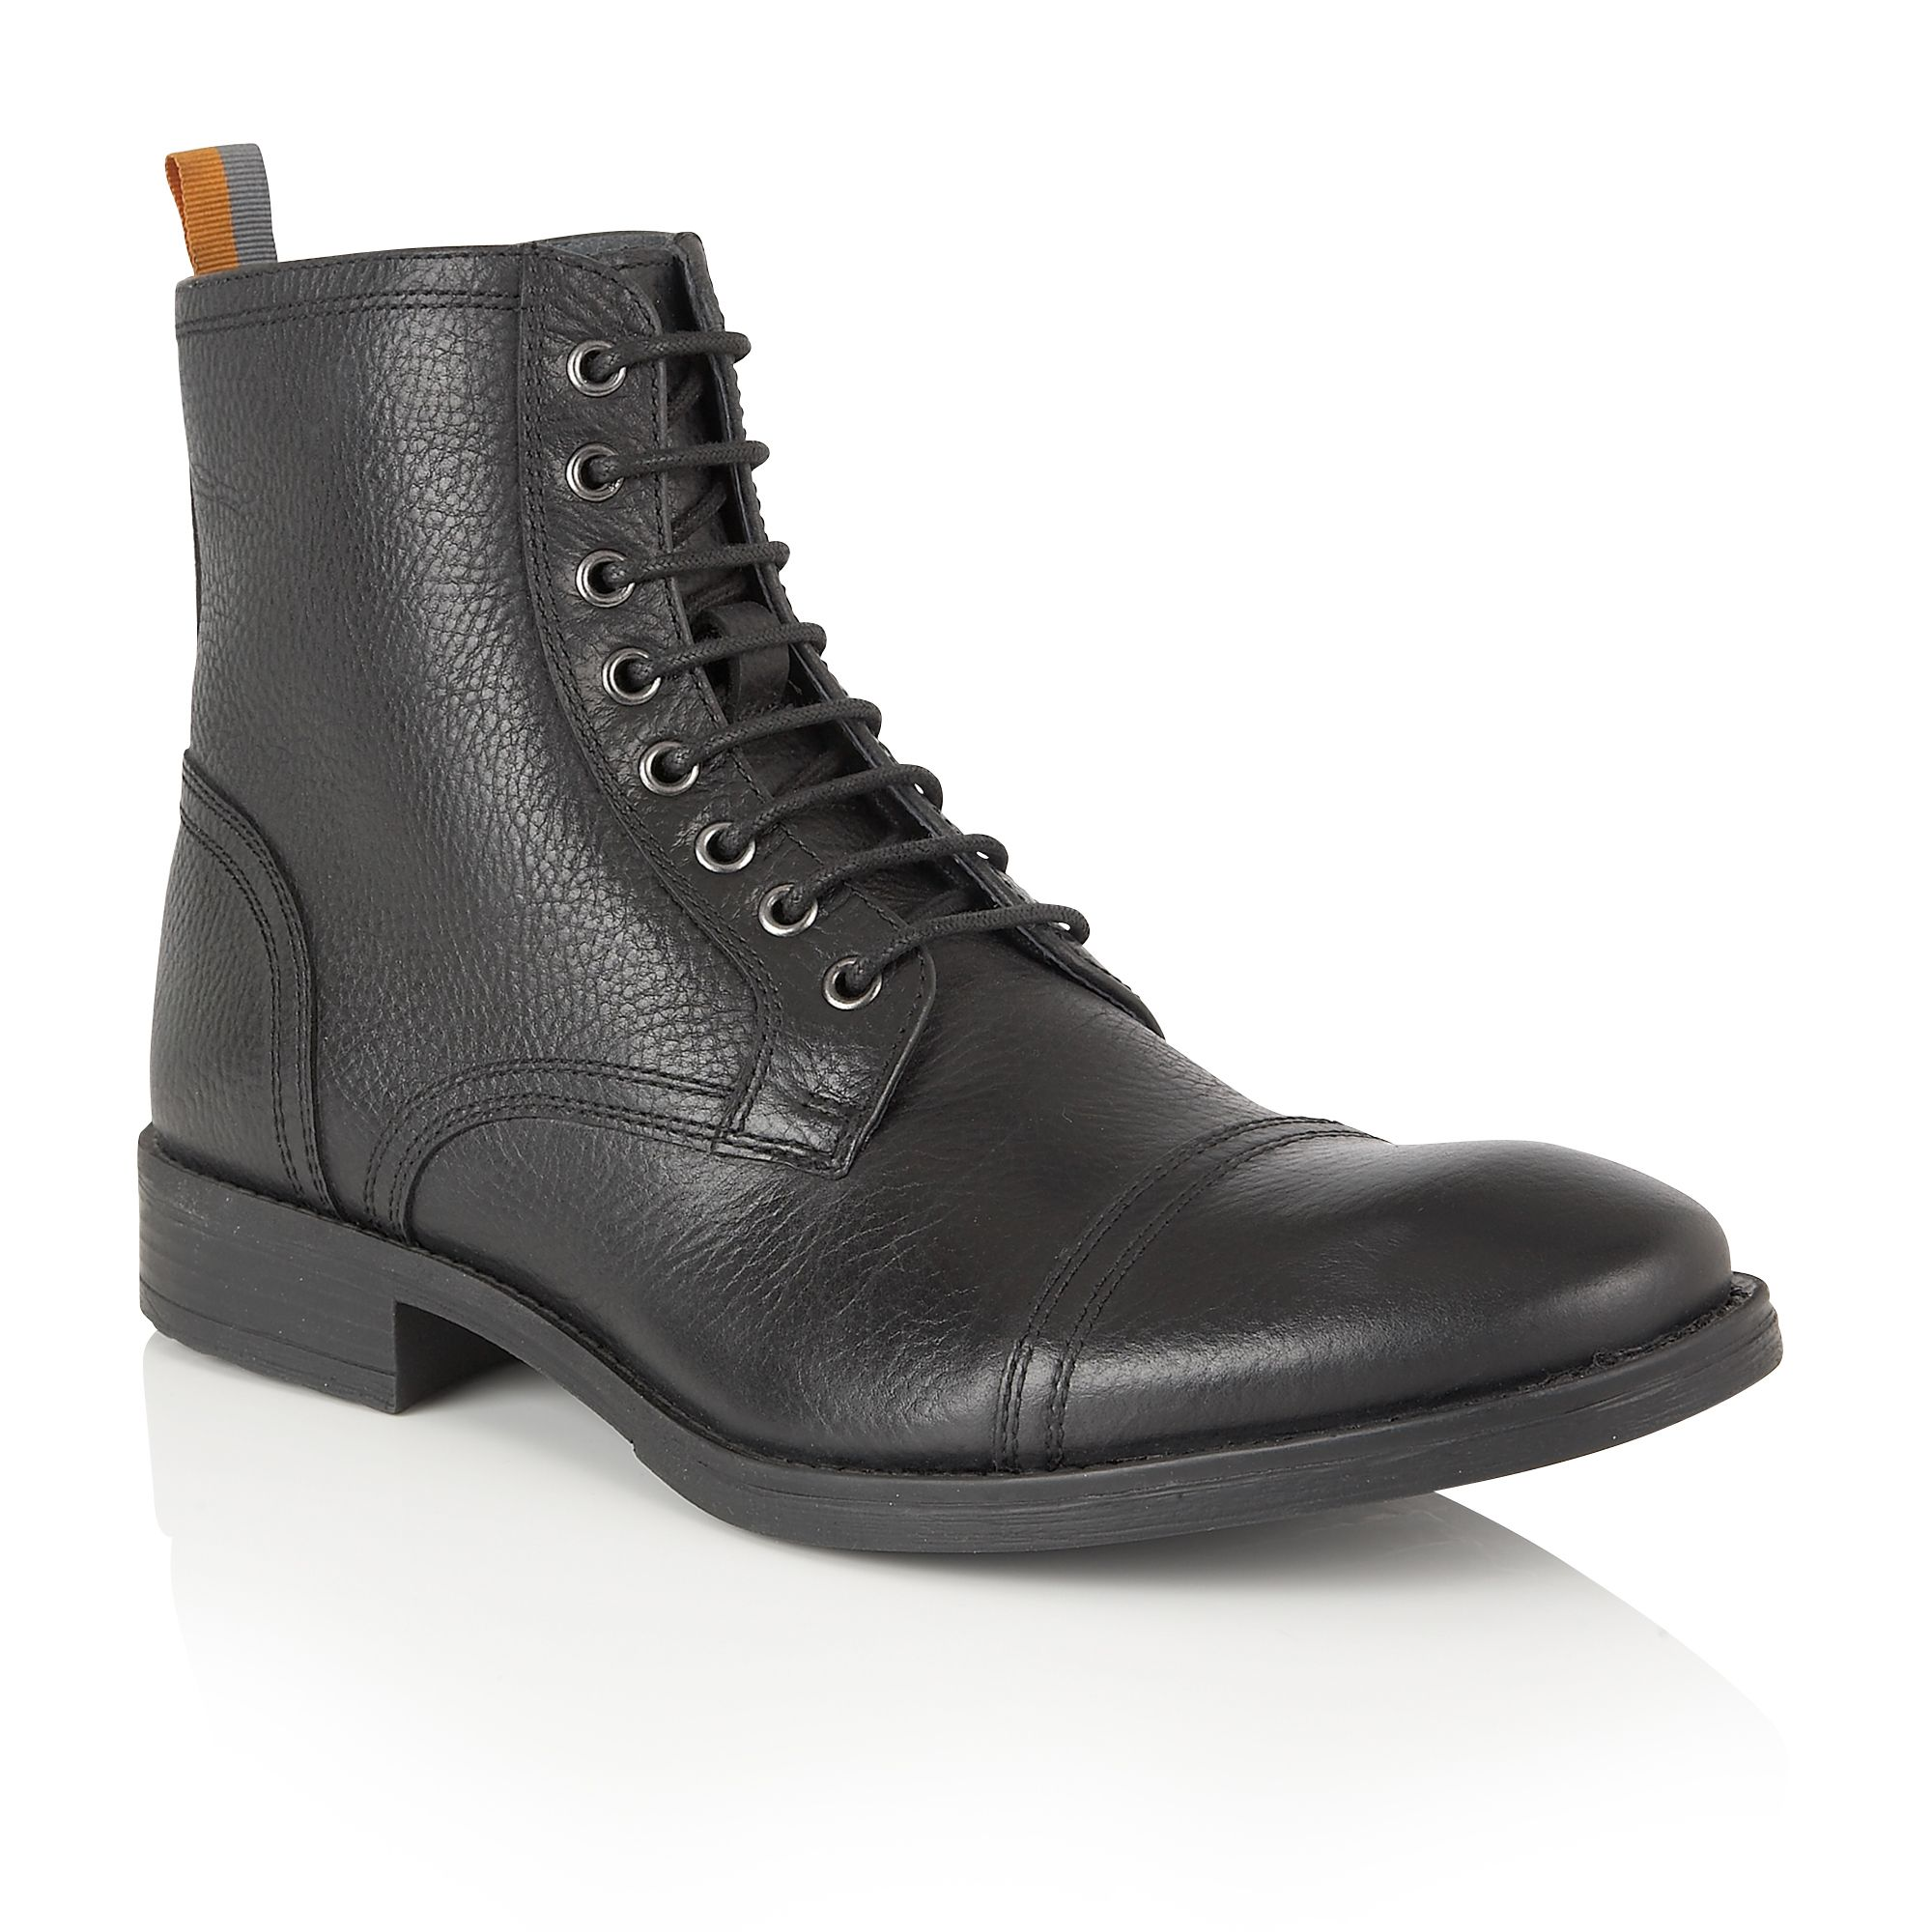 Frank Wright Frank Wright Marris Mens Boots, Black